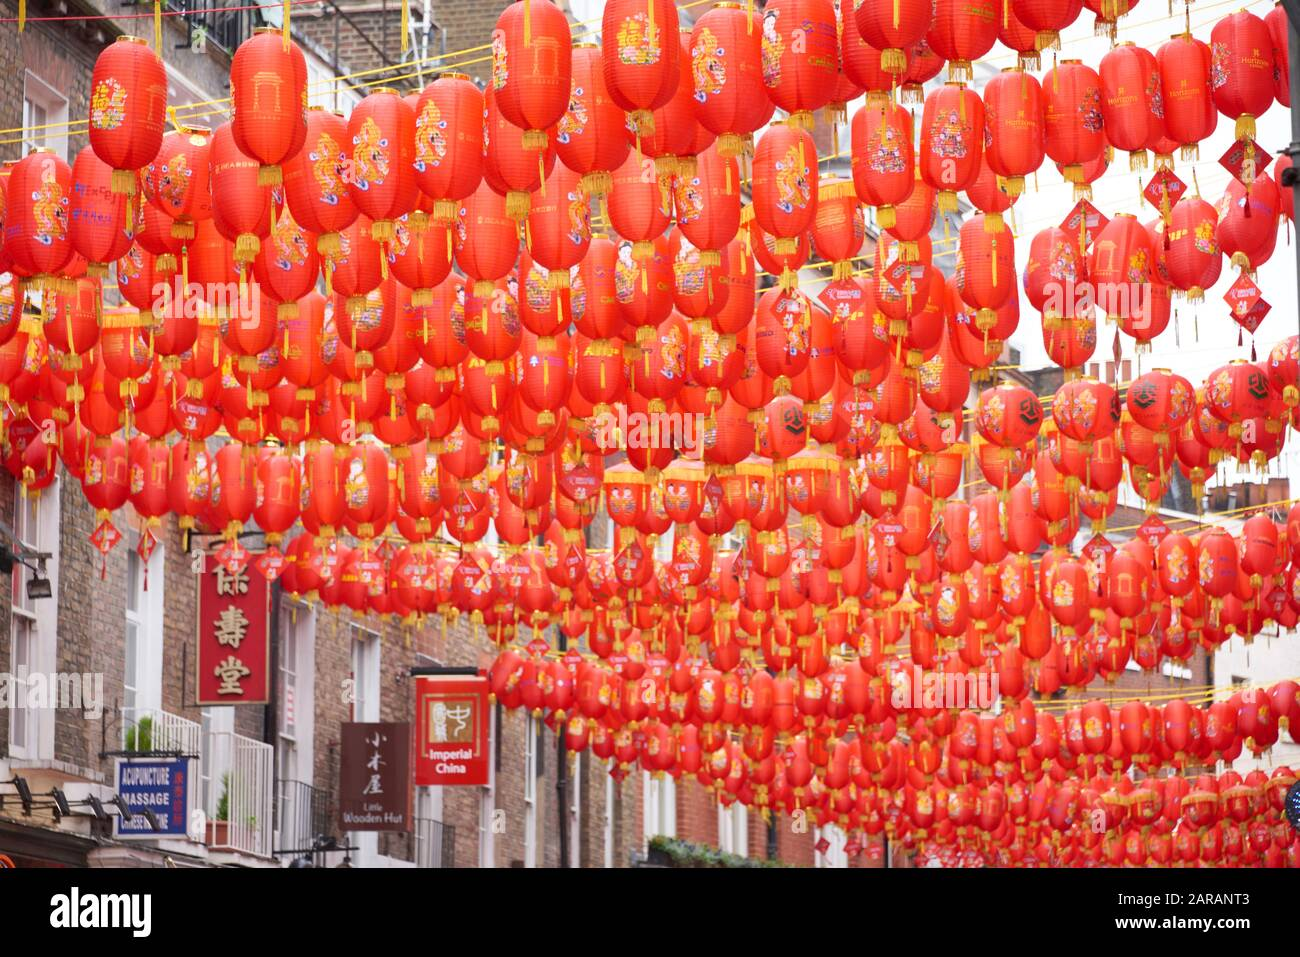 Chinese New Year 2020 London Chinatown London With Celebration Red Lanterns Above The Streets Year Of Rat 2020 Stock Photo Alamy